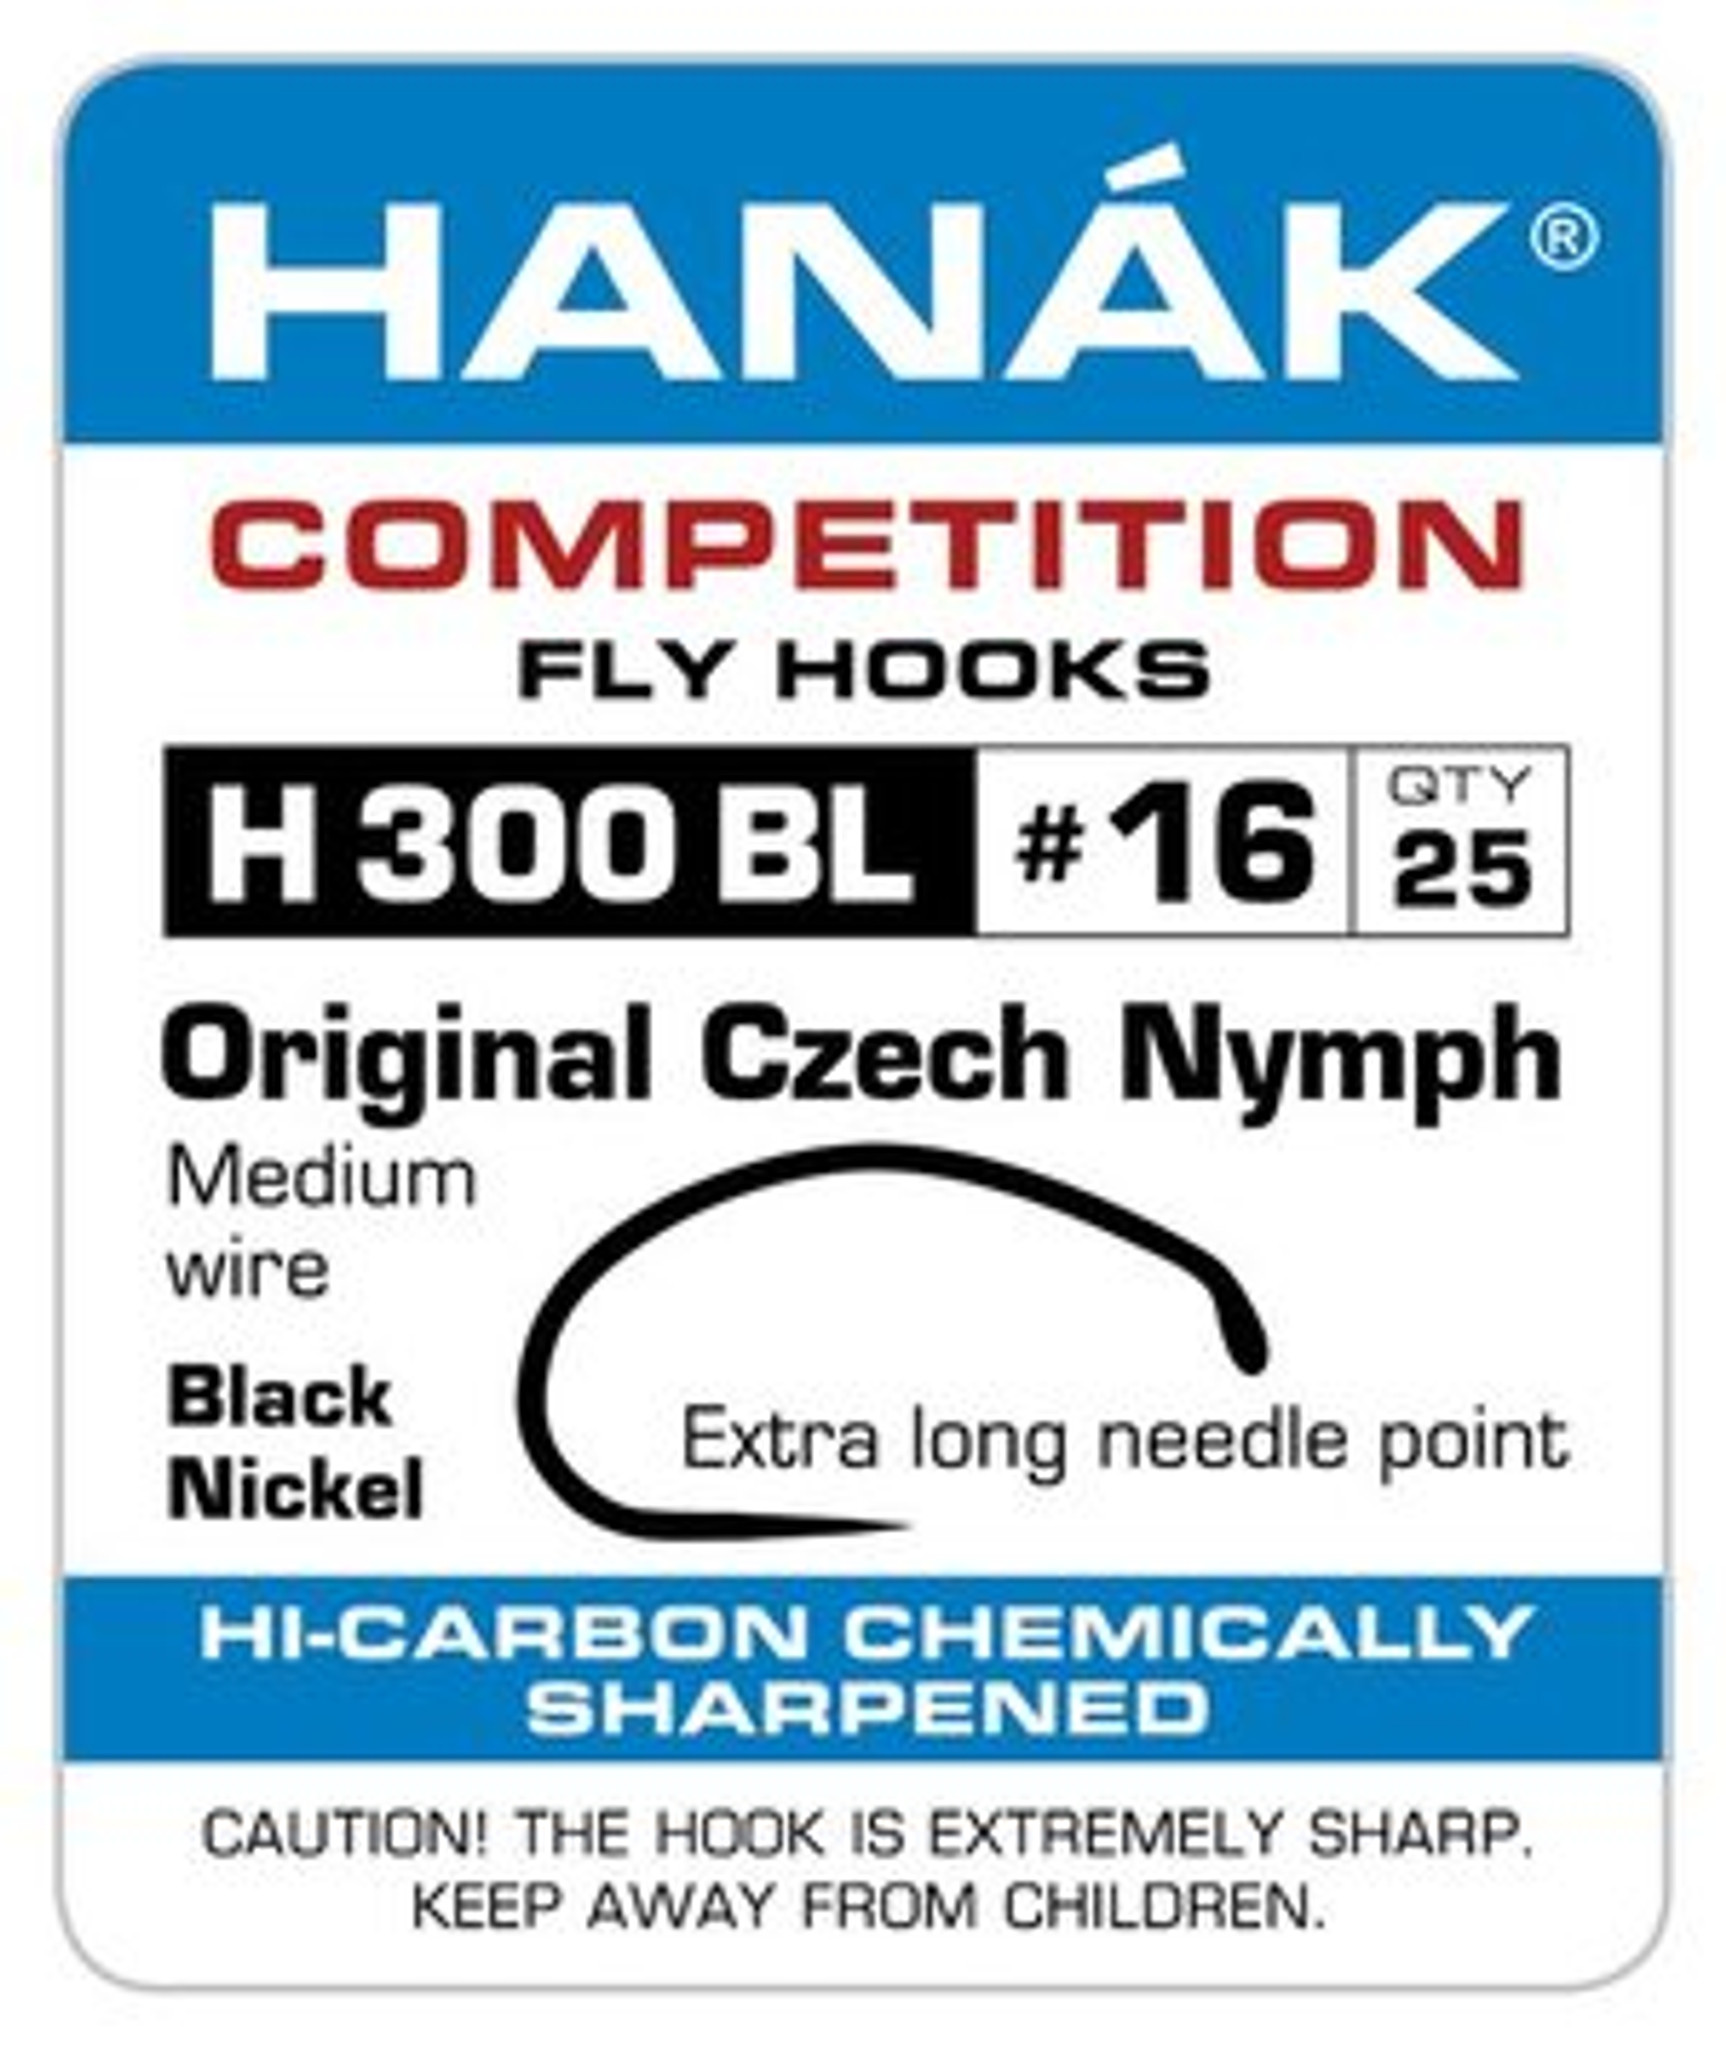 Hanak H333 BL Czech Nymph Barbless Competition Fly Tying Fishing Hooks All Sizes